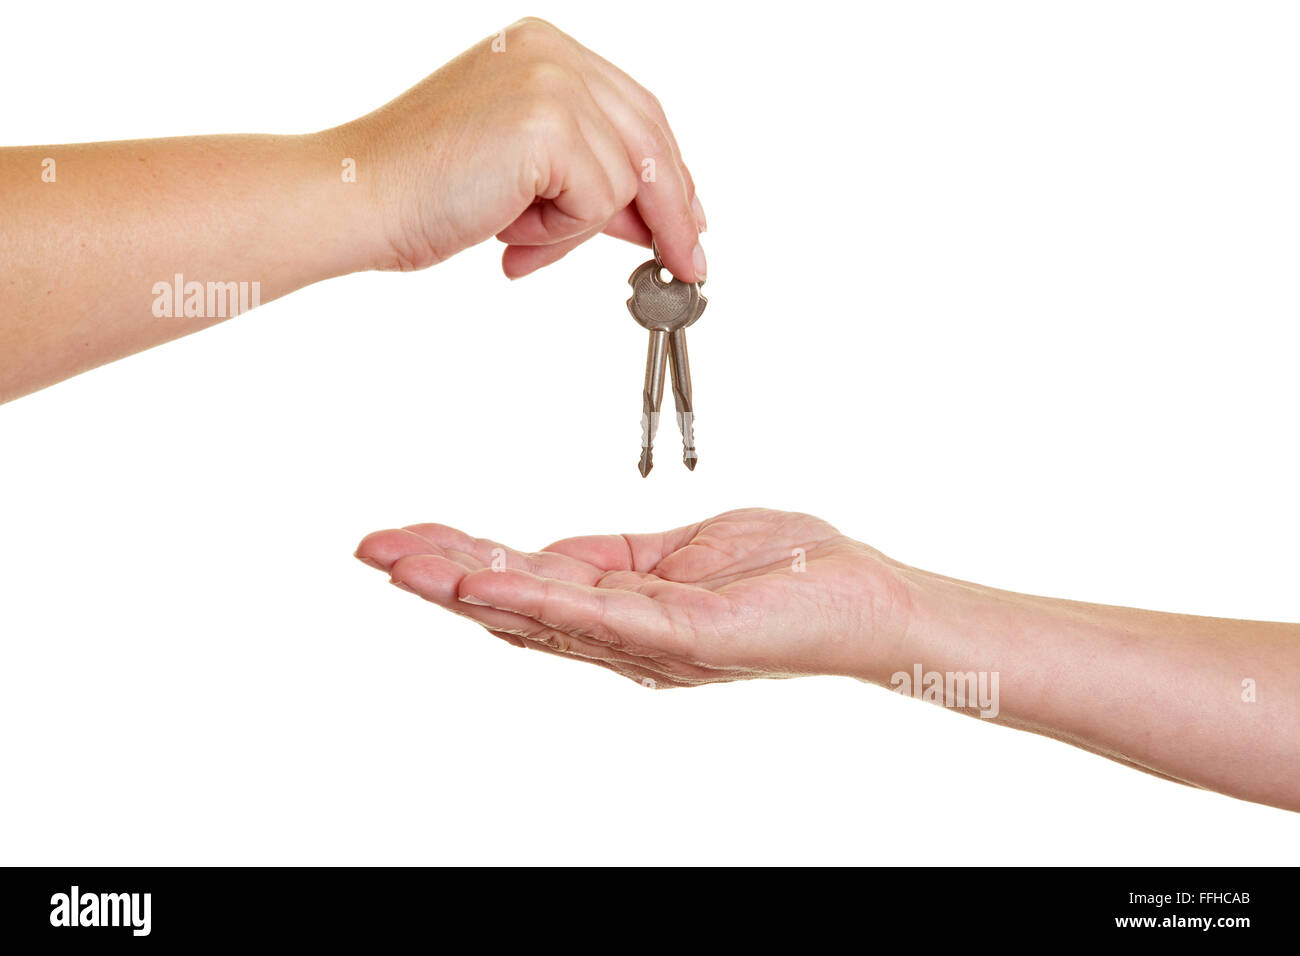 Handover of keys from one hand to another - Stock Image